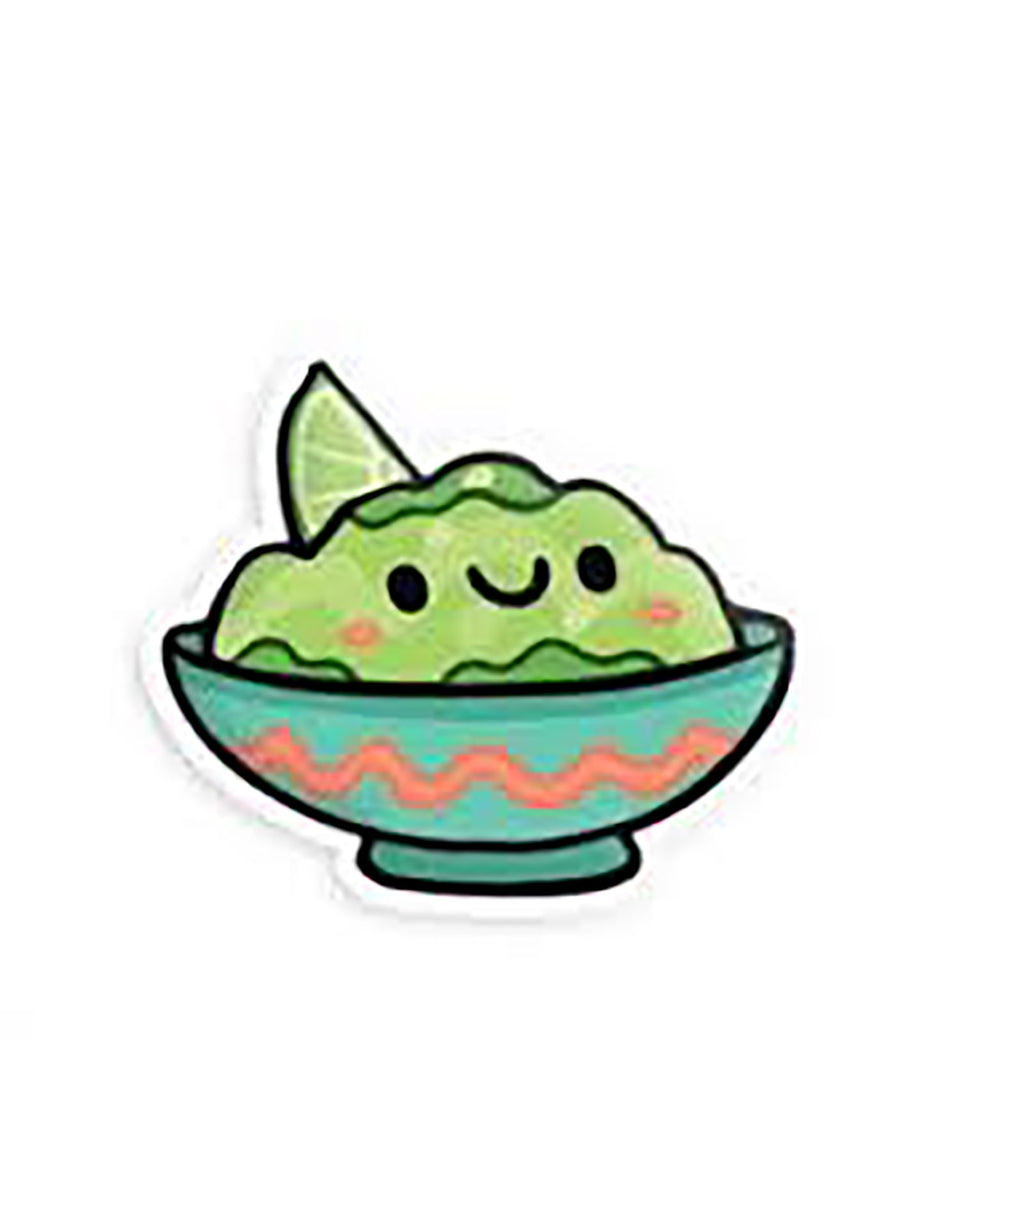 Squishable Vinyl Sticker Guacamole